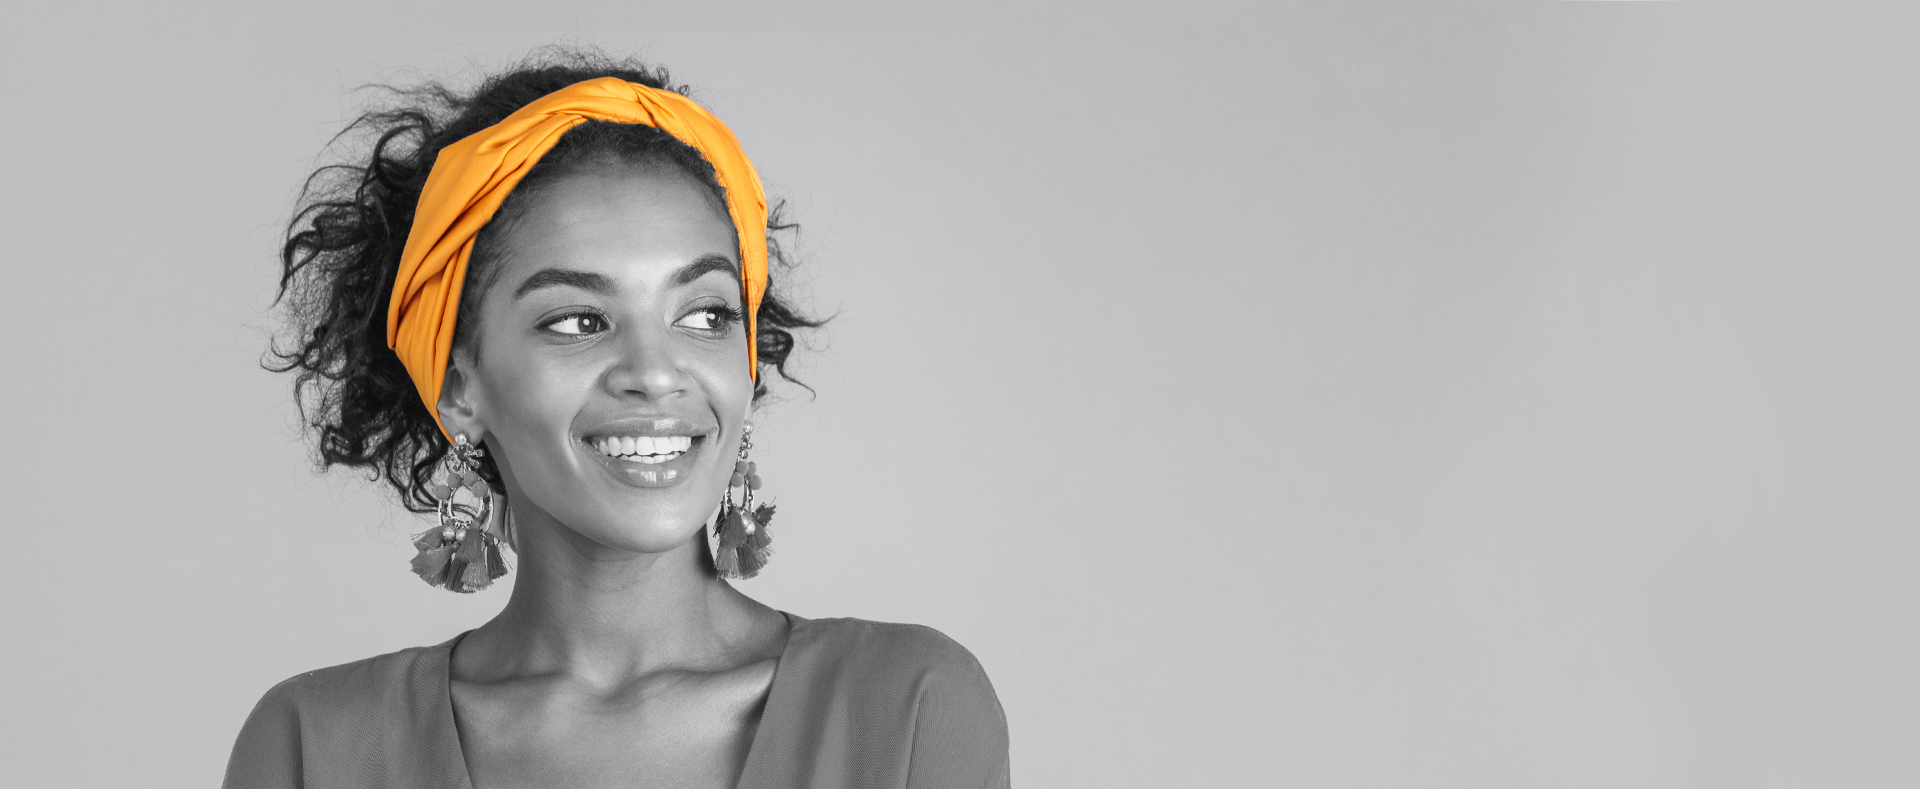 Black and white photo of a woman with a orange headband.